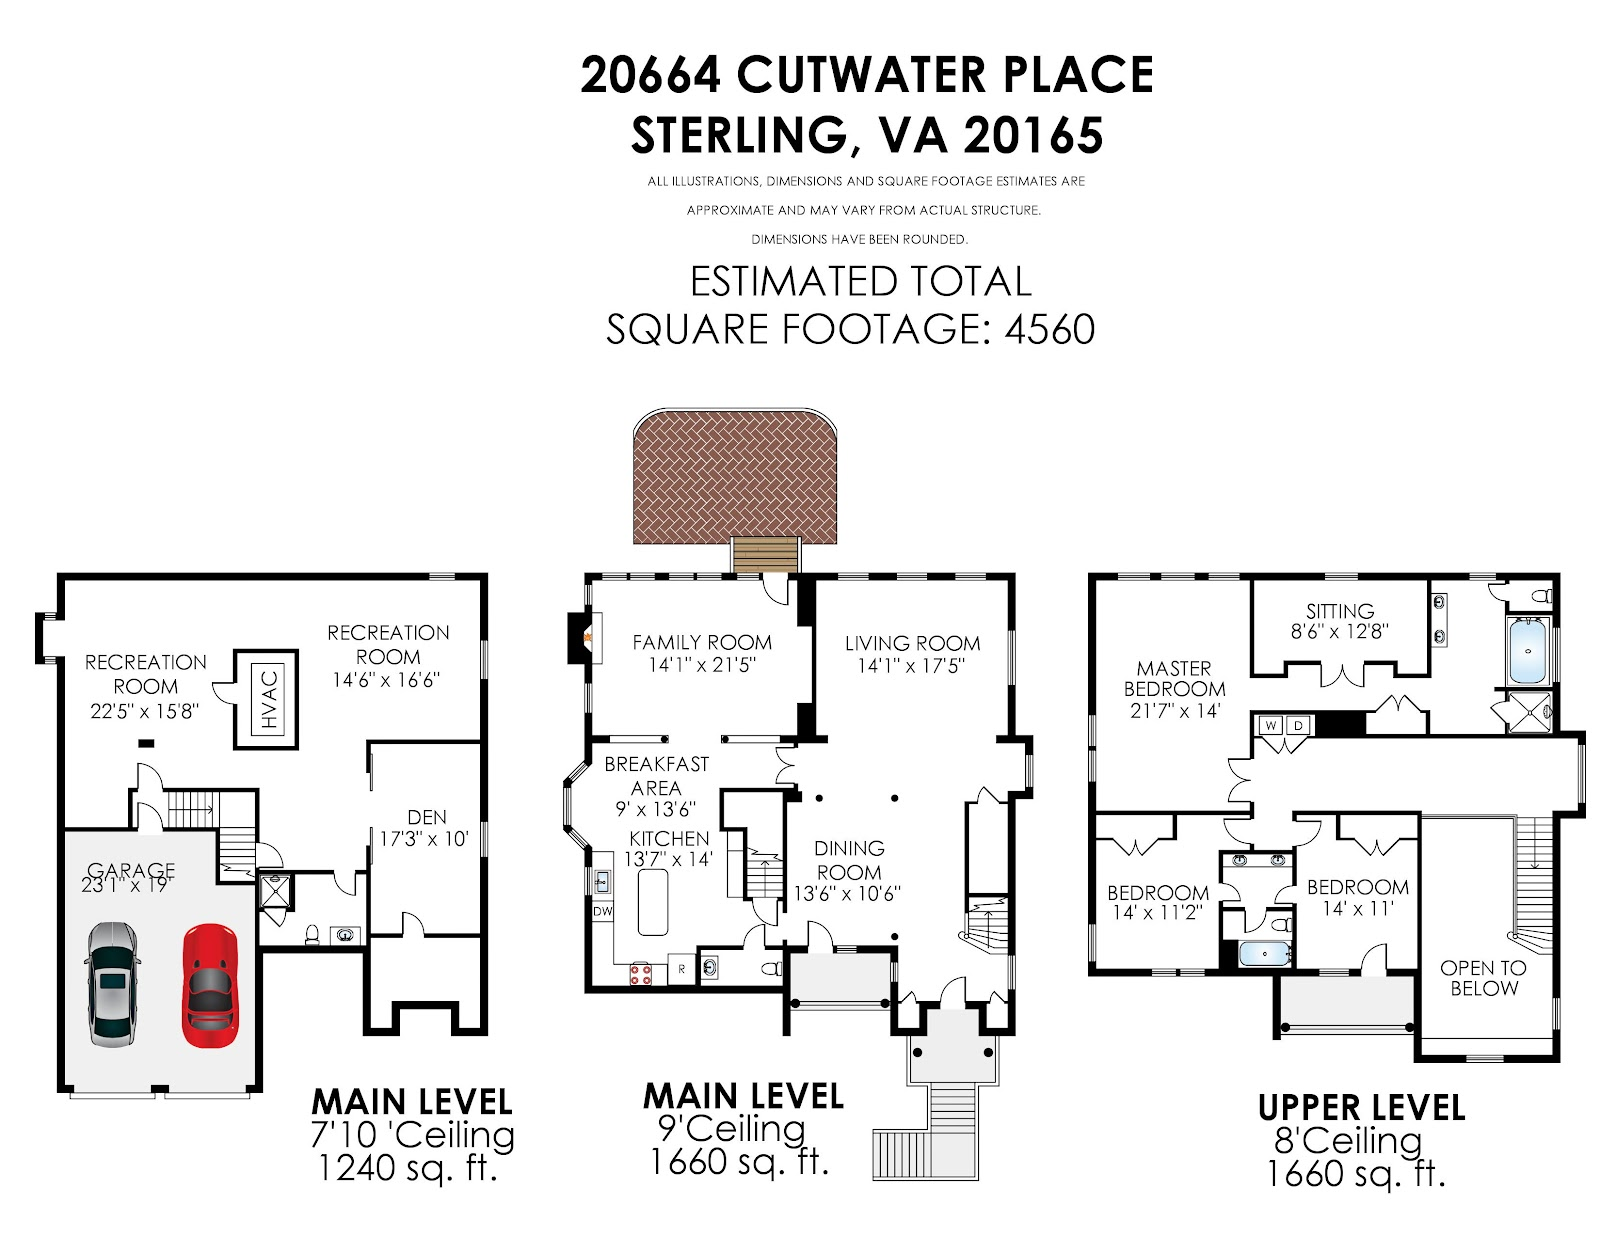 20664 Cutwater Pl, Sterling, VA 20165_Floorplan